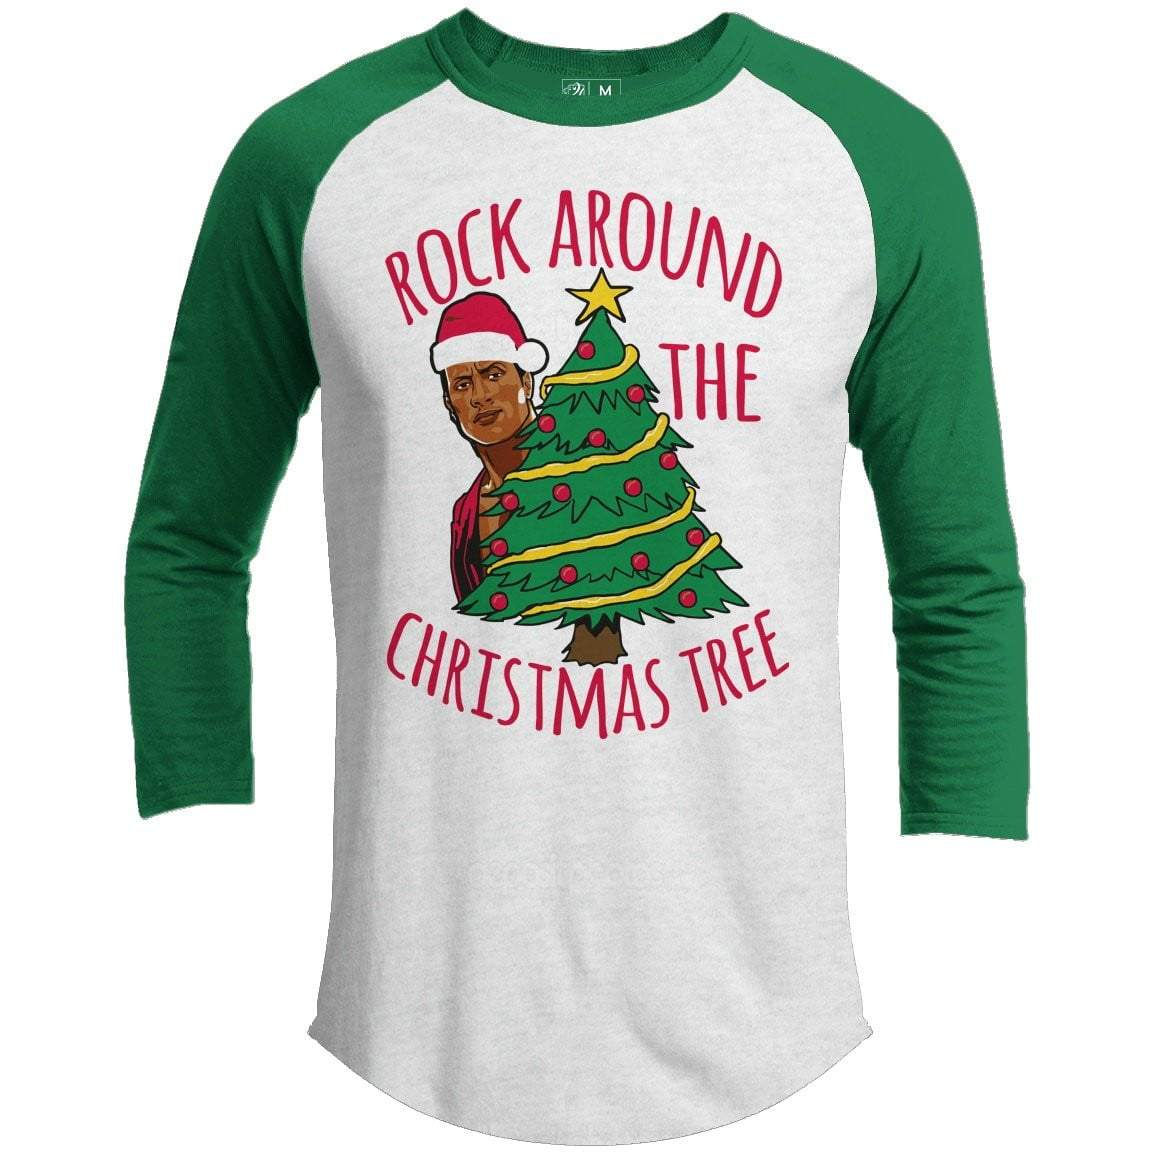 ROCK AROUND THE TREE Premium Youth Christmas Raglan